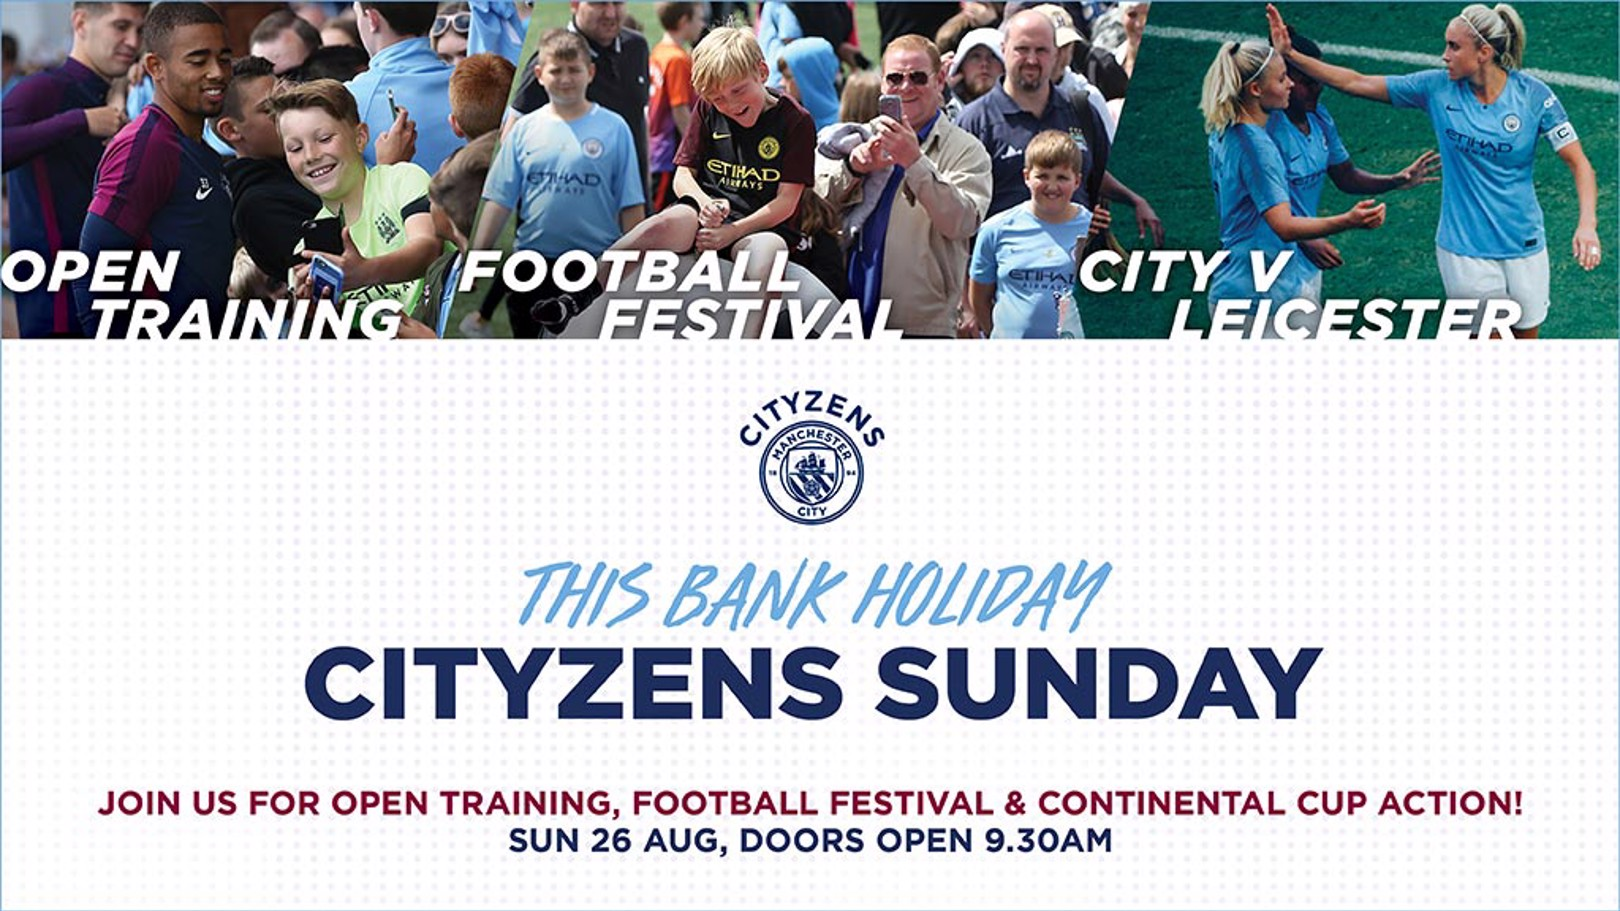 CITYZENS SUNDAY: Join us at the CFA for a day of family fun and open training